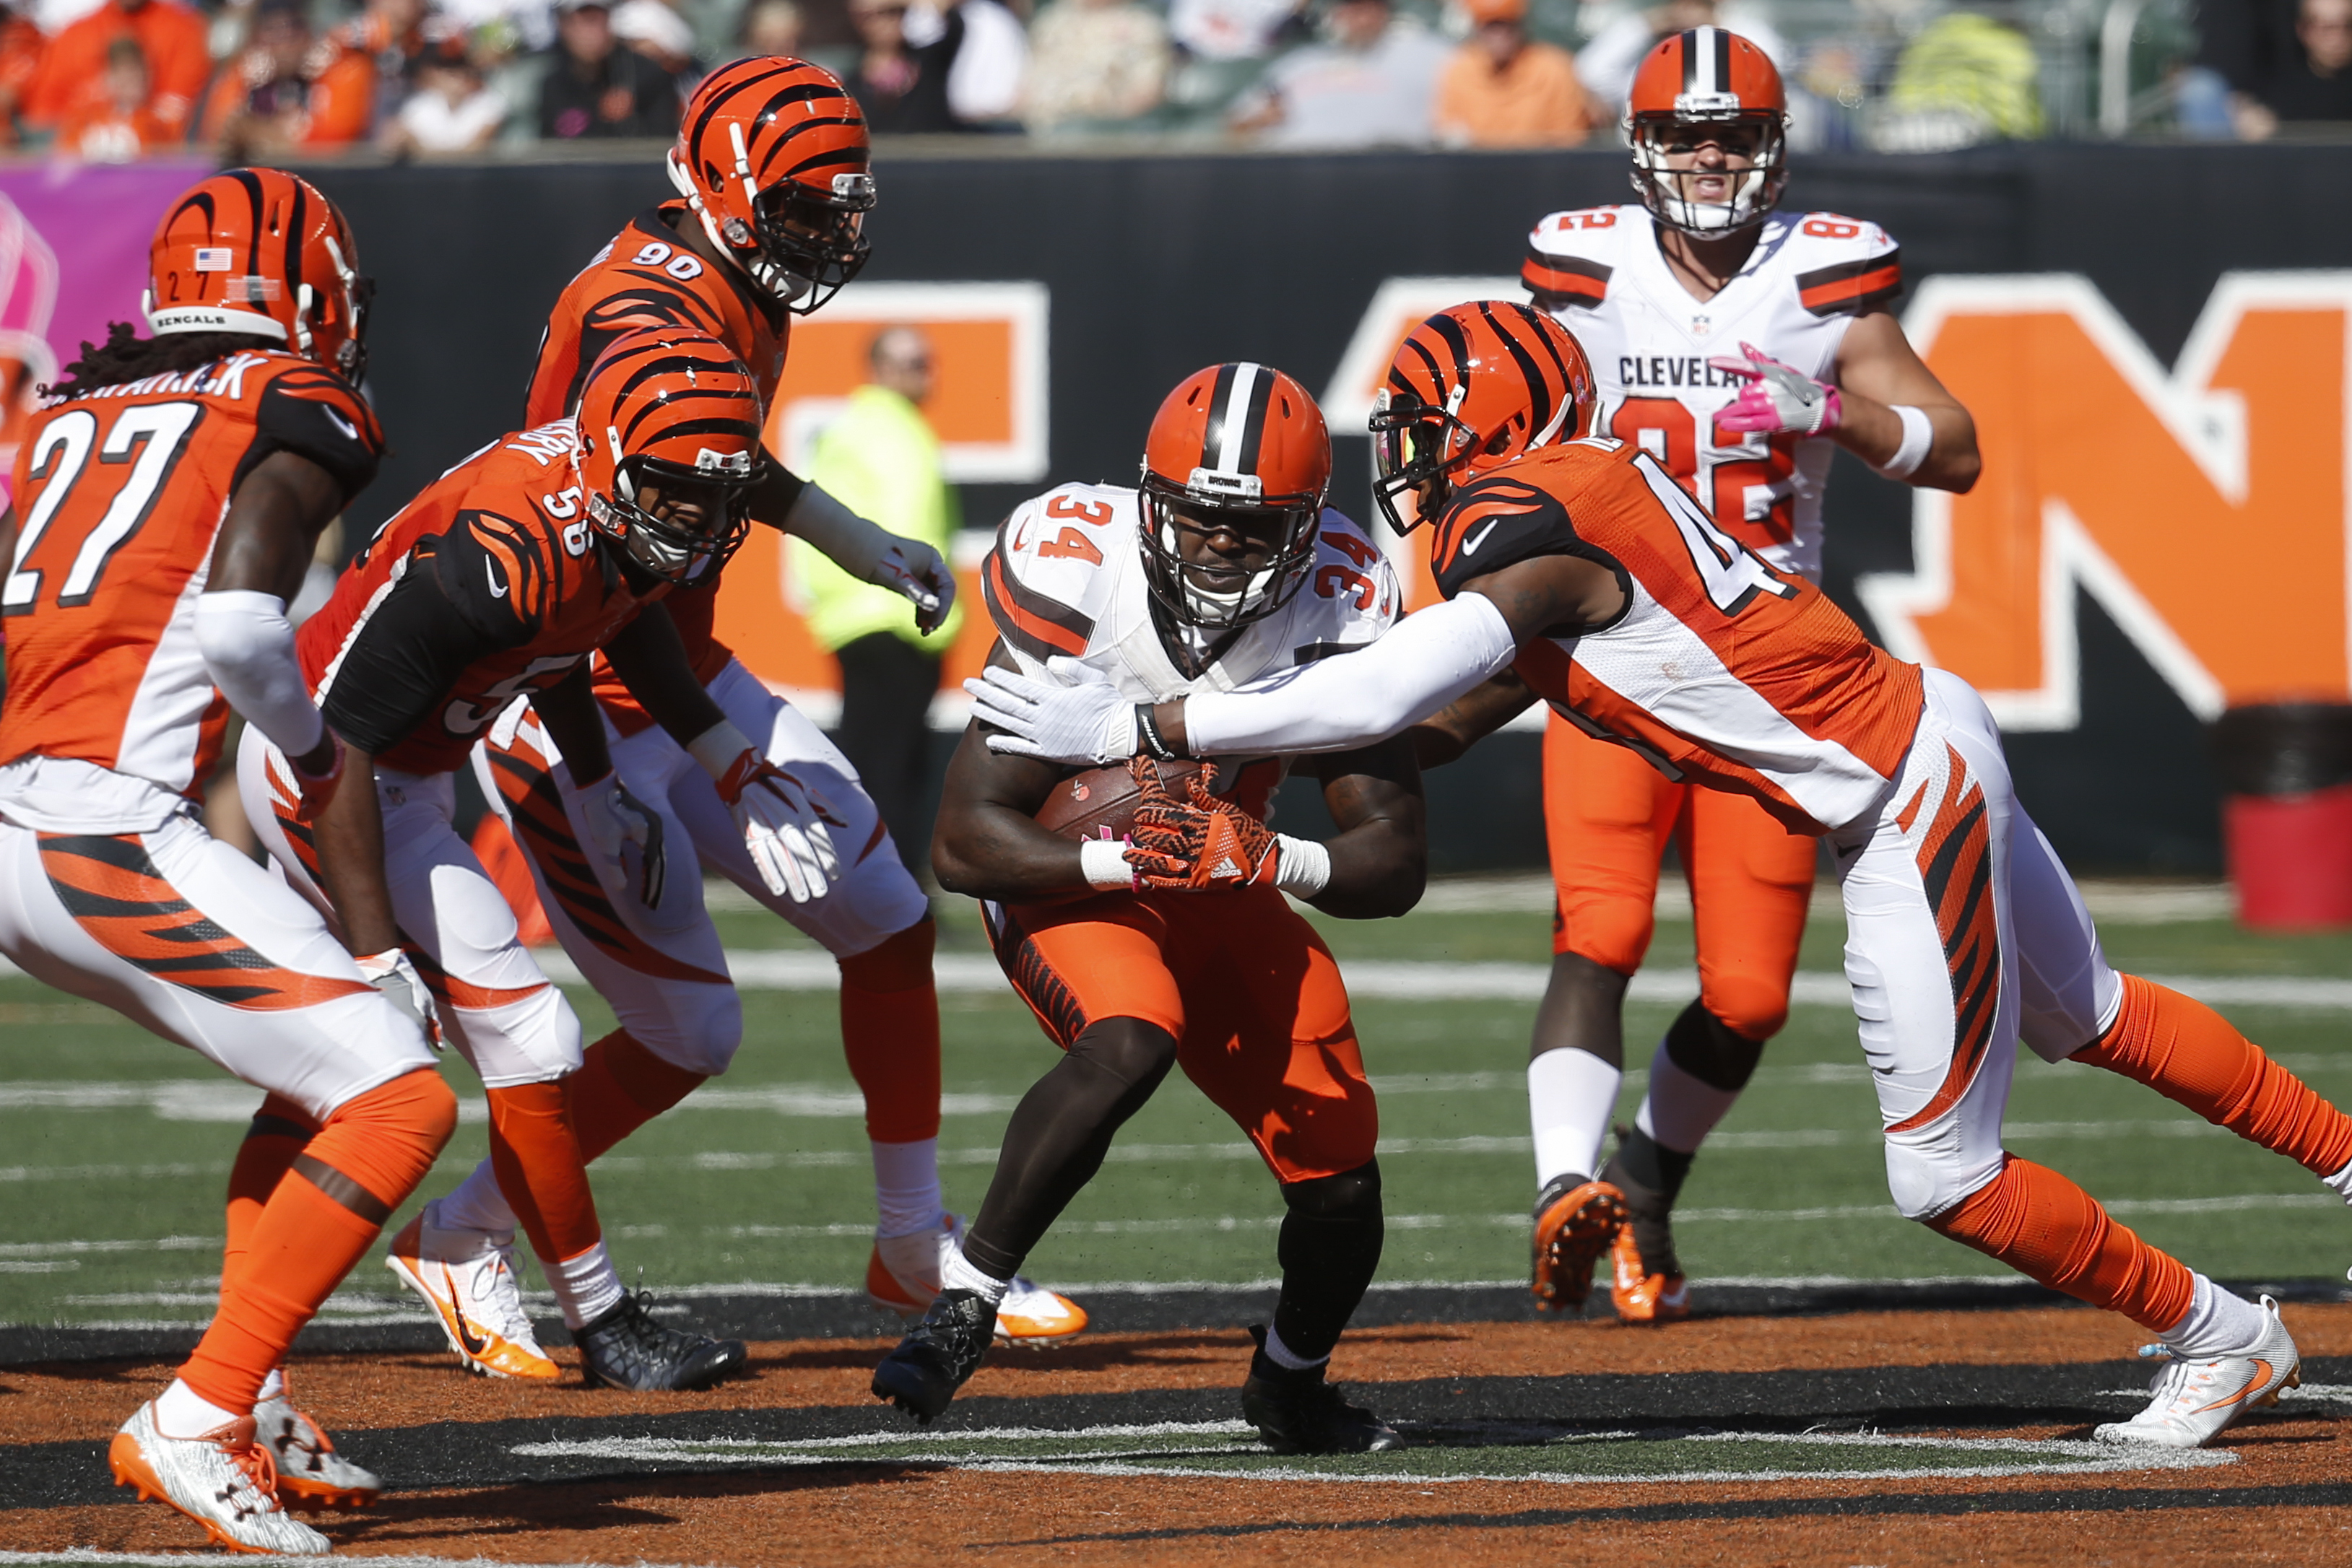 FILE - In this Sunday, Oct. 23, 2016, file photo, Cleveland Browns running back Isaiah Crowell (34) runs the ball through a host of Cincinnati Bengals defenders in the second half of an NFL football game in Cincinnati. The Bengals defense has had trouble